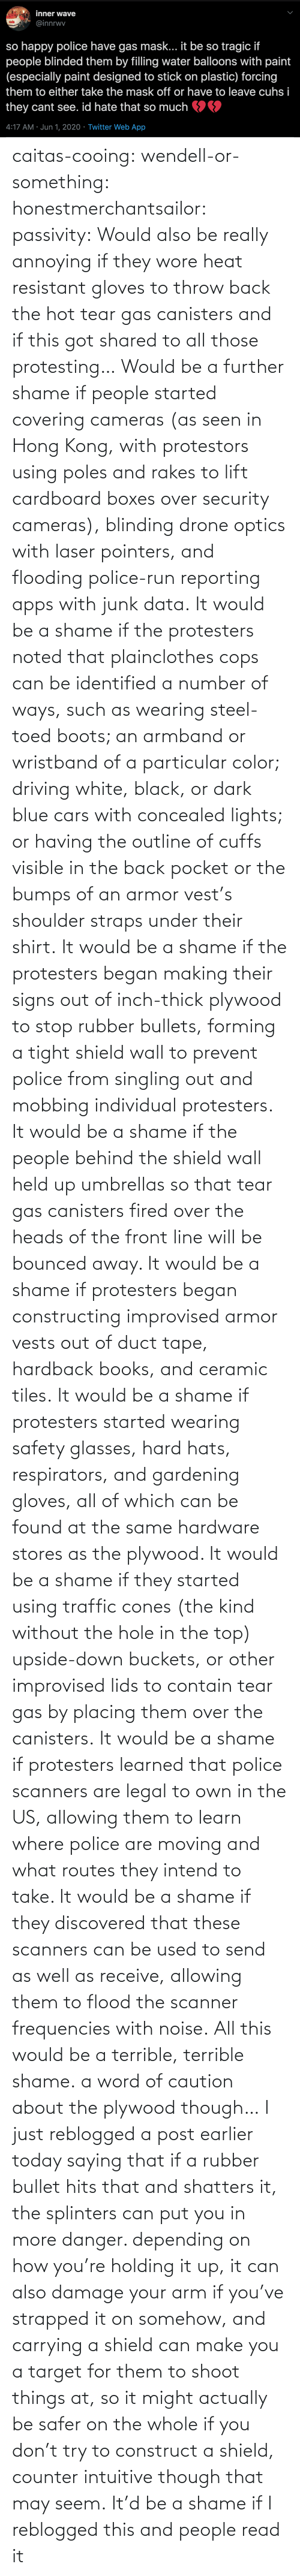 Take: caitas-cooing:  wendell-or-something: honestmerchantsailor:  passivity: Would also be really annoying if they wore heat resistant gloves to throw back the hot tear gas canisters and if this got shared to all those protesting… Would be a further shame if people started covering cameras (as seen in Hong Kong, with protestors using poles and rakes to lift cardboard boxes over security cameras), blinding drone optics with laser pointers, and flooding police-run reporting apps with junk data. It would be a shame if the protesters noted that plainclothes cops can be identified a number of ways, such as wearing steel-toed boots; an armband or wristband of a particular color; driving white, black, or dark blue cars with concealed lights; or having the outline of cuffs visible in the back pocket or the bumps of an armor vest's shoulder straps under their shirt. It would be a shame if the protesters began making their signs out of inch-thick plywood to stop rubber bullets, forming a tight shield wall to prevent police from singling out and mobbing individual protesters. It would be a shame if the people behind the shield wall held up umbrellas so that tear gas canisters fired over the heads of the front line will be bounced away. It would be a shame if protesters began constructing improvised armor vests out of duct tape, hardback books, and ceramic tiles. It would be a shame if protesters started wearing safety glasses, hard hats, respirators, and gardening gloves, all of which can be found at the same hardware stores as the plywood. It would be a shame if they started using traffic cones (the kind without the hole in the top) upside-down buckets, or other improvised lids to contain tear gas by placing them over the canisters. It would be a shame if protesters learned that police scanners are legal to own in the US, allowing them to learn where police are moving and what routes they intend to take. It would be a shame if they discovered that these scanners can be used to send as well as receive, allowing them to flood the scanner frequencies with noise. All this would be a terrible, terrible shame.    a word of caution about the plywood though… I just reblogged a post earlier today saying that if a rubber bullet hits that and shatters it, the splinters can put you in more danger. depending on how you're holding it up, it can also damage your arm if you've strapped it on somehow, and carrying a shield can make you a target for them to shoot things at, so it might actually be safer on the whole if you don't try to construct a shield, counter intuitive though that may seem.    It'd be a shame if I reblogged this and people read it